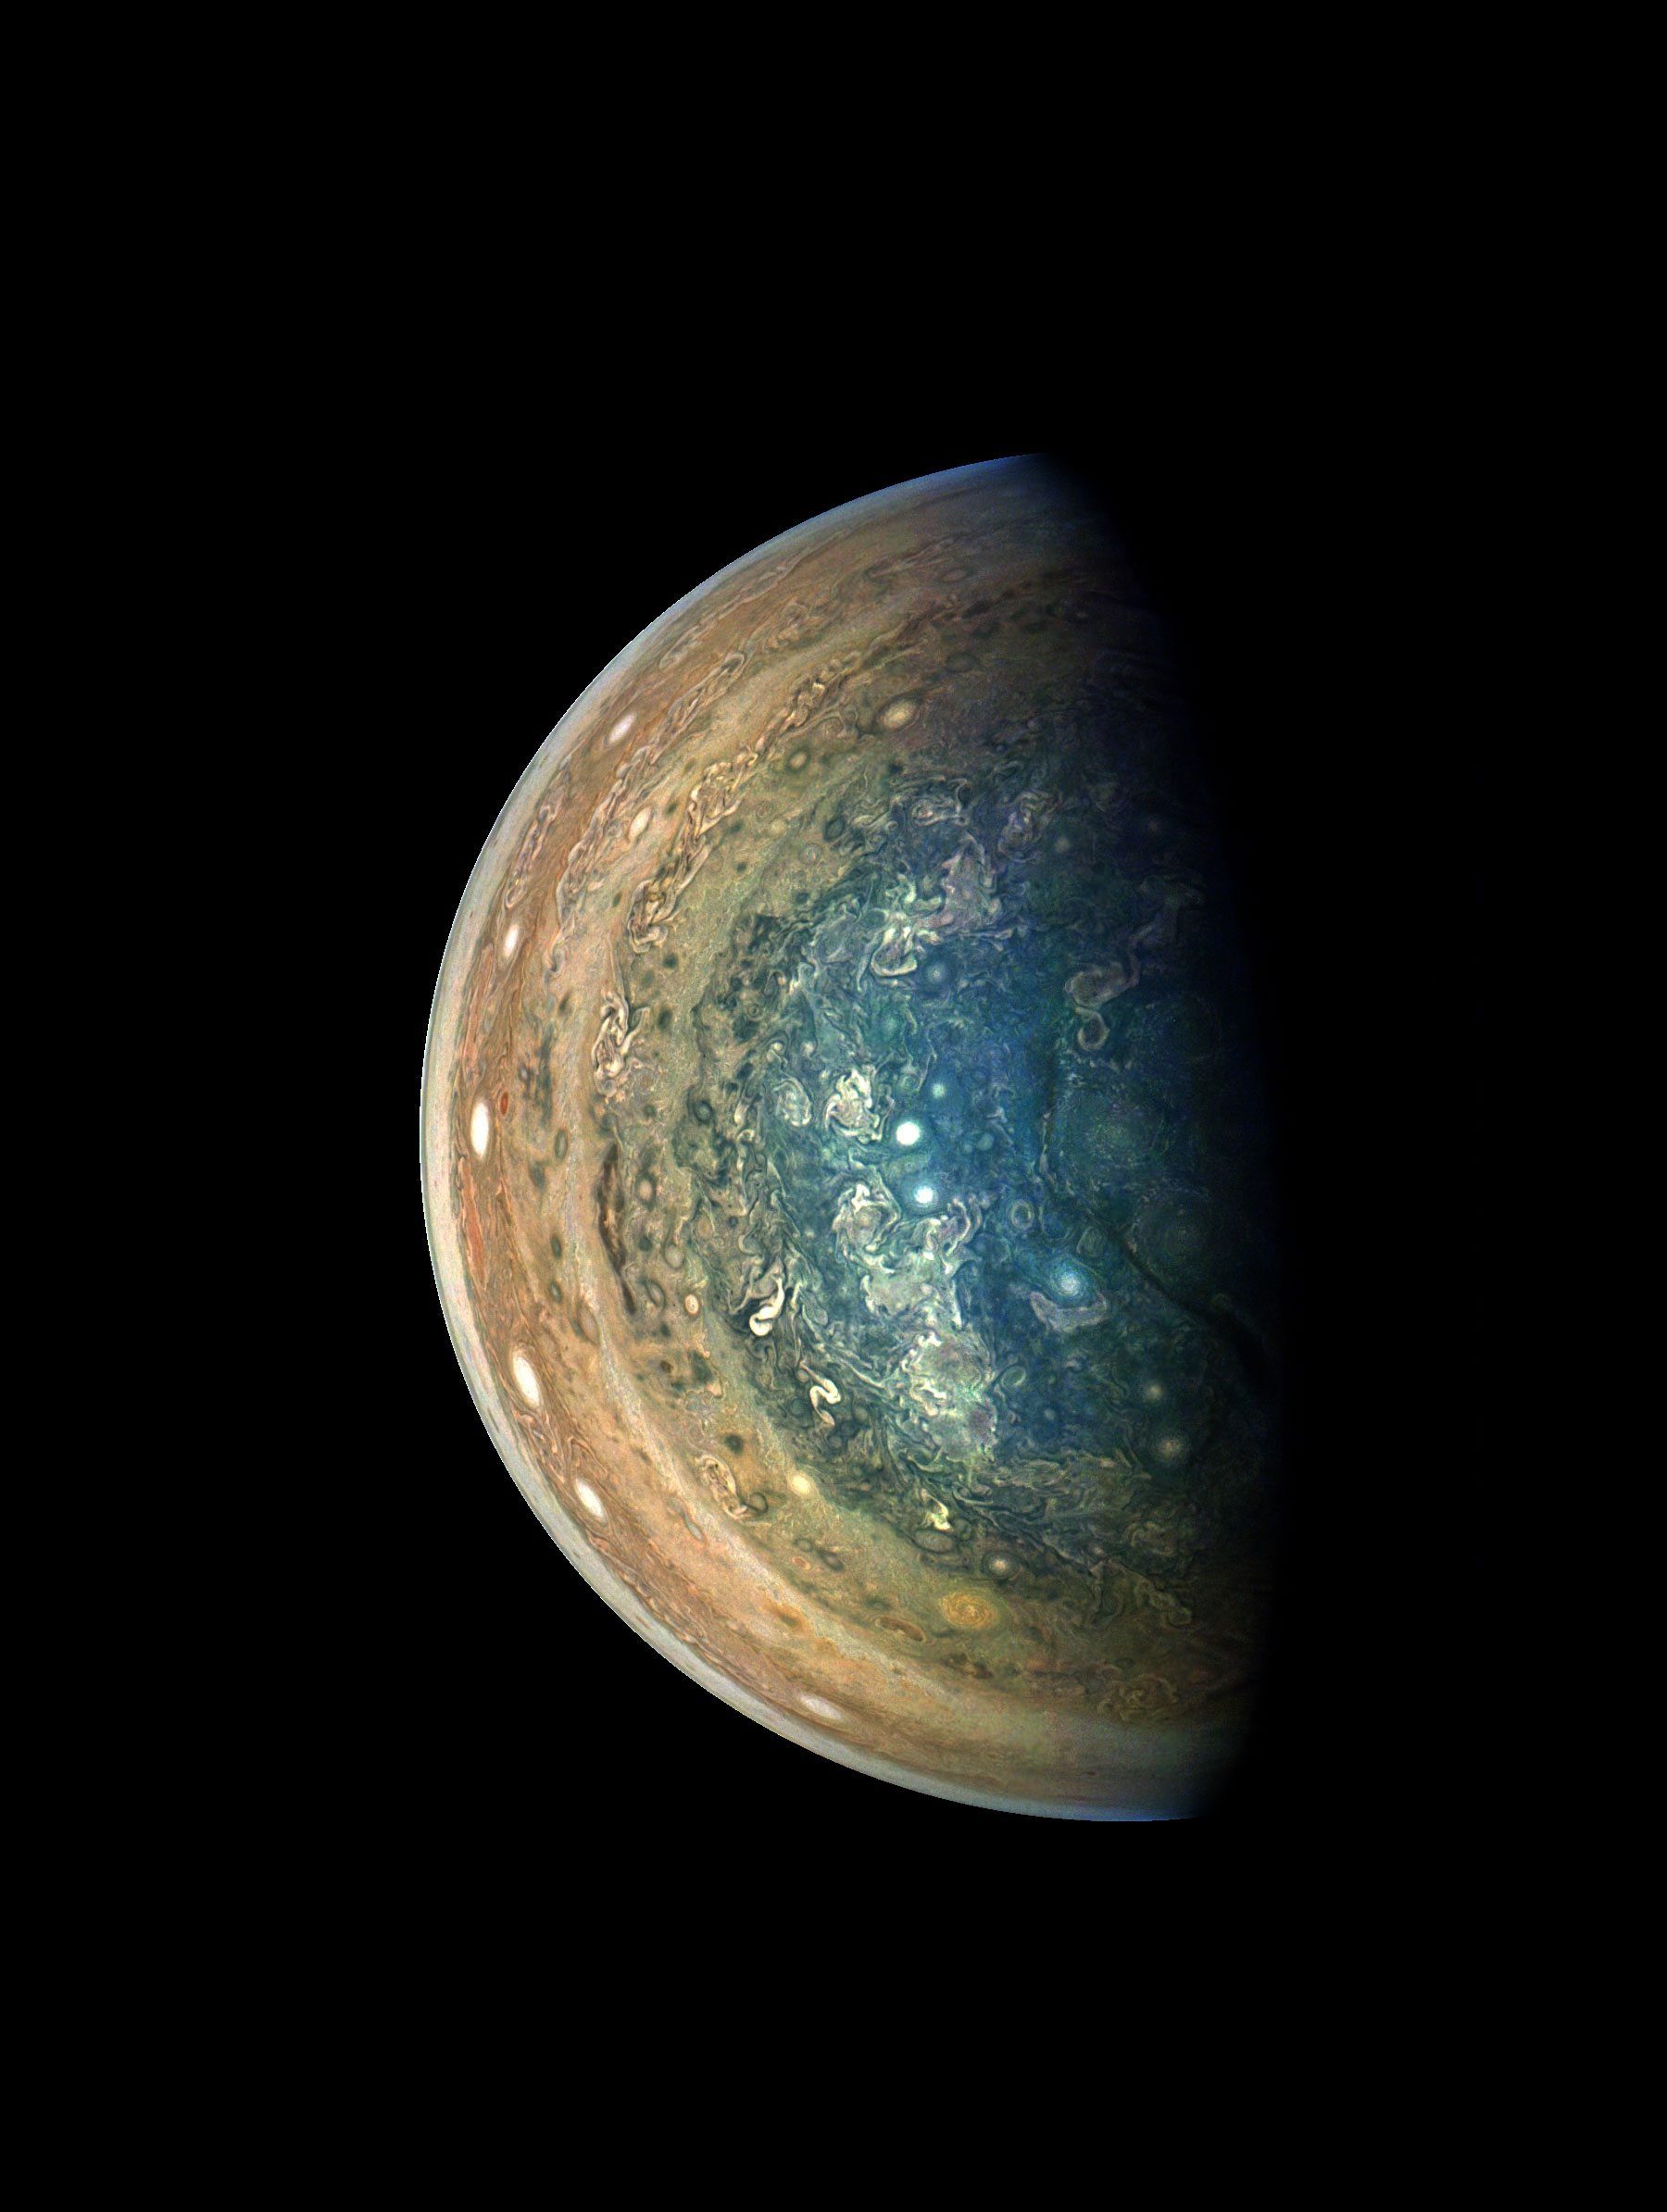 jupiter swirling south pole